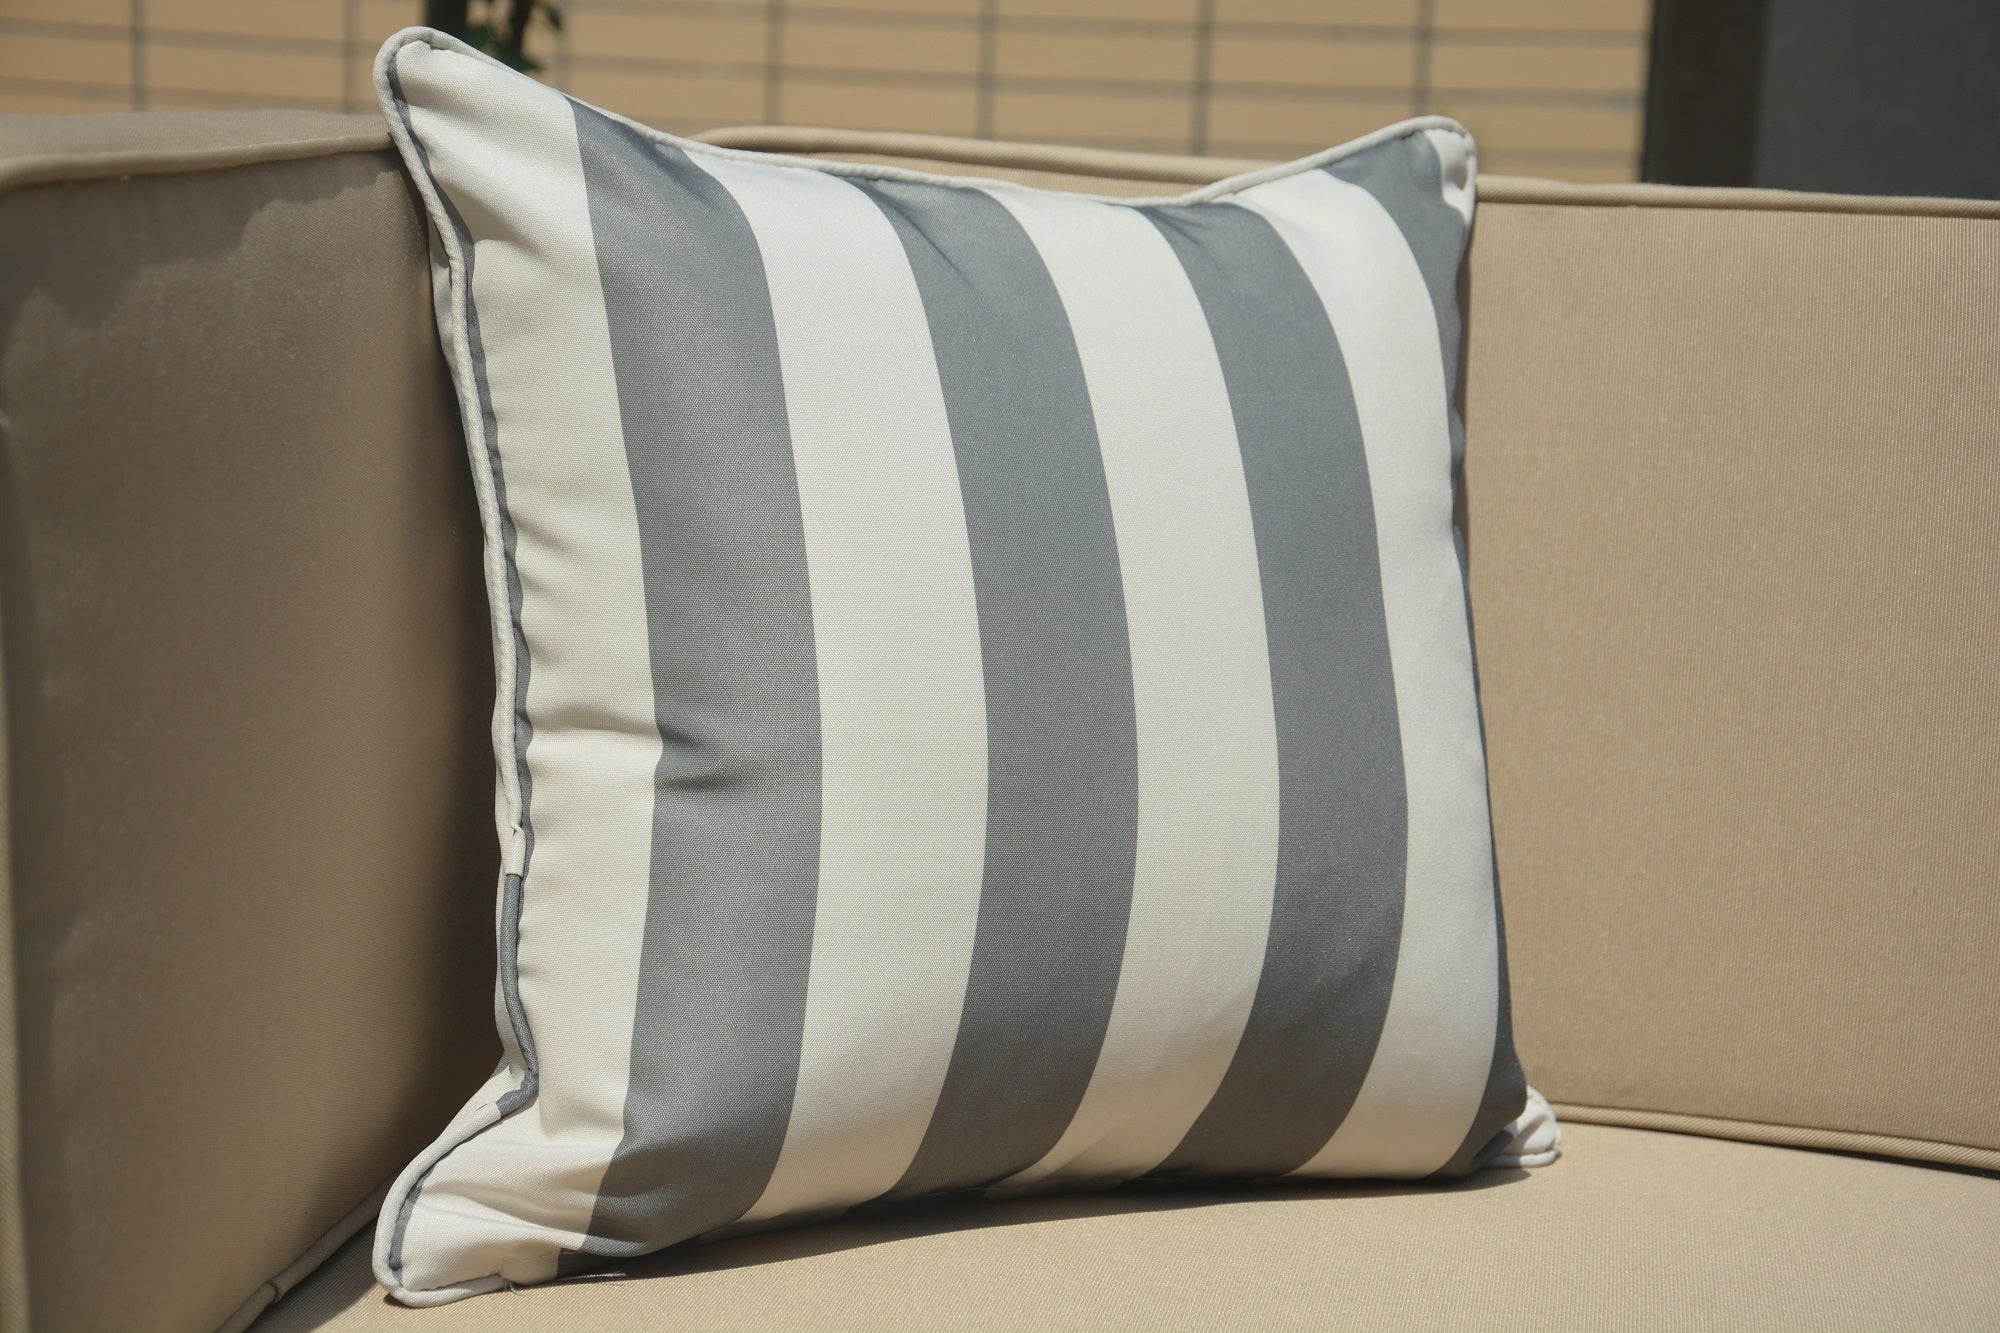 Outdoor Pillow in Grey/Beige - Set of 2